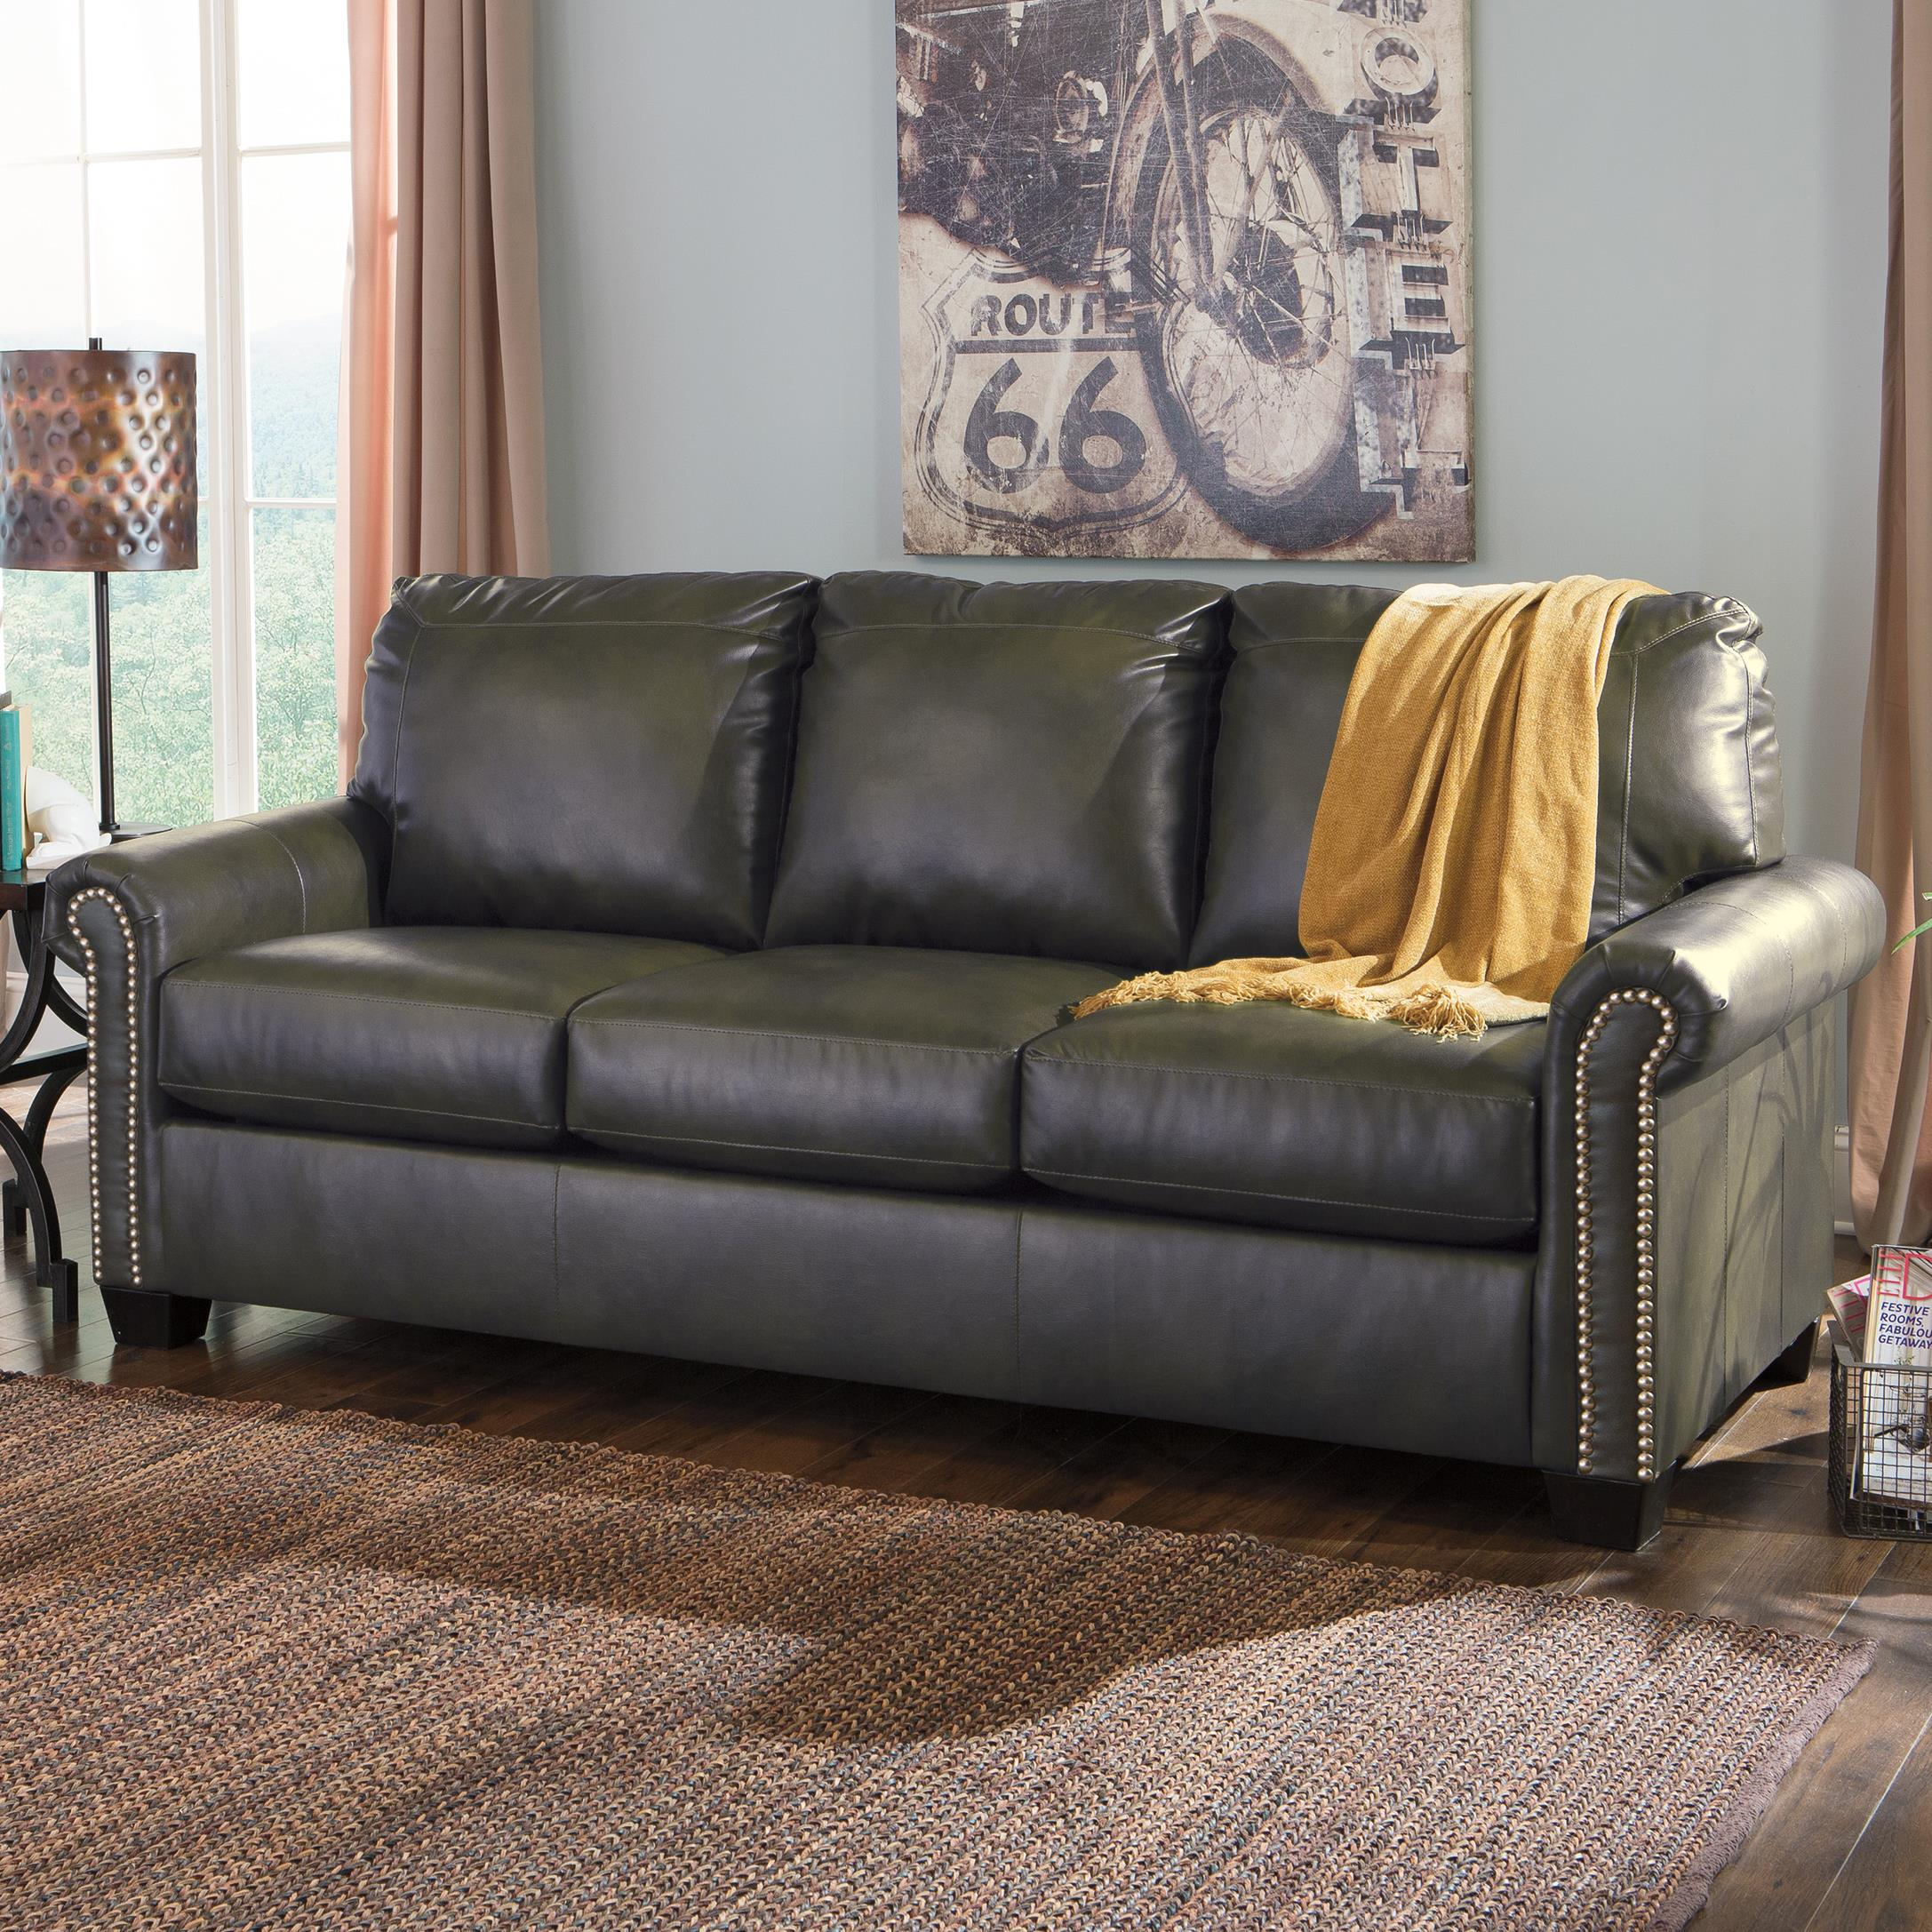 Transitional Bonded Leather Match 84 Queen Sofa Sleeper